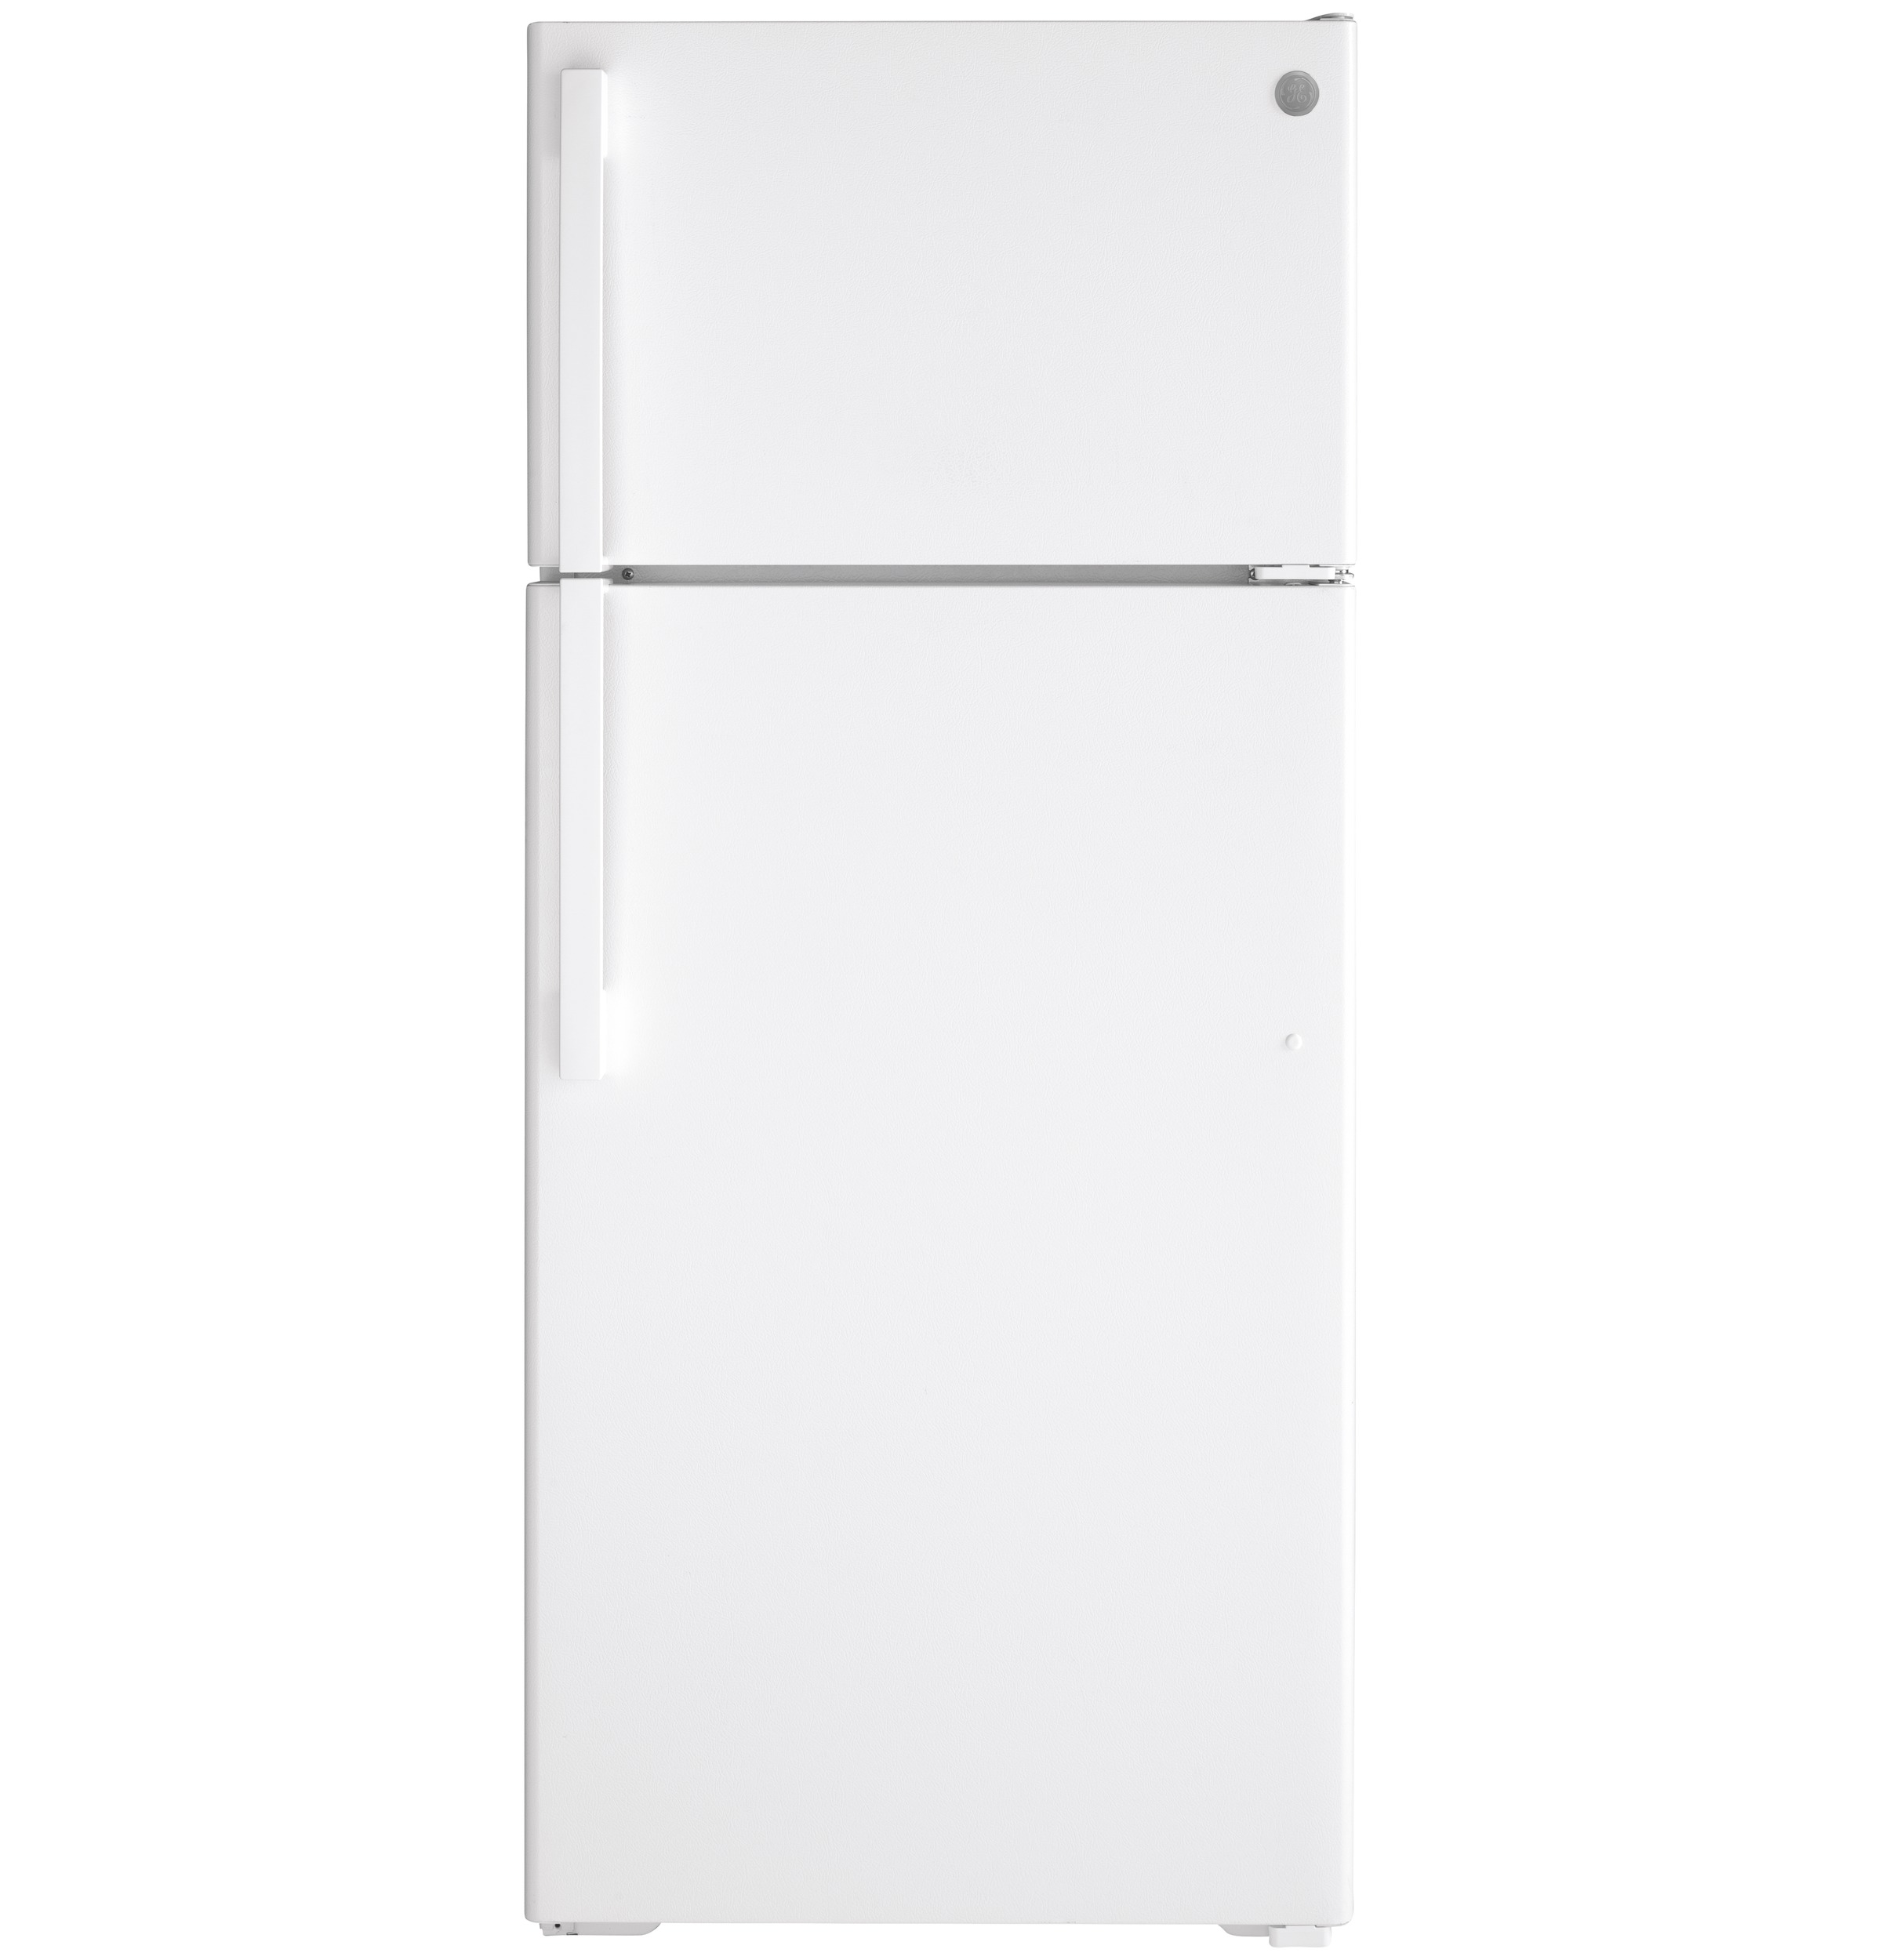 GE GE® ENERGY STAR® 17.5 Cu. Ft. Top-Freezer Refrigerator